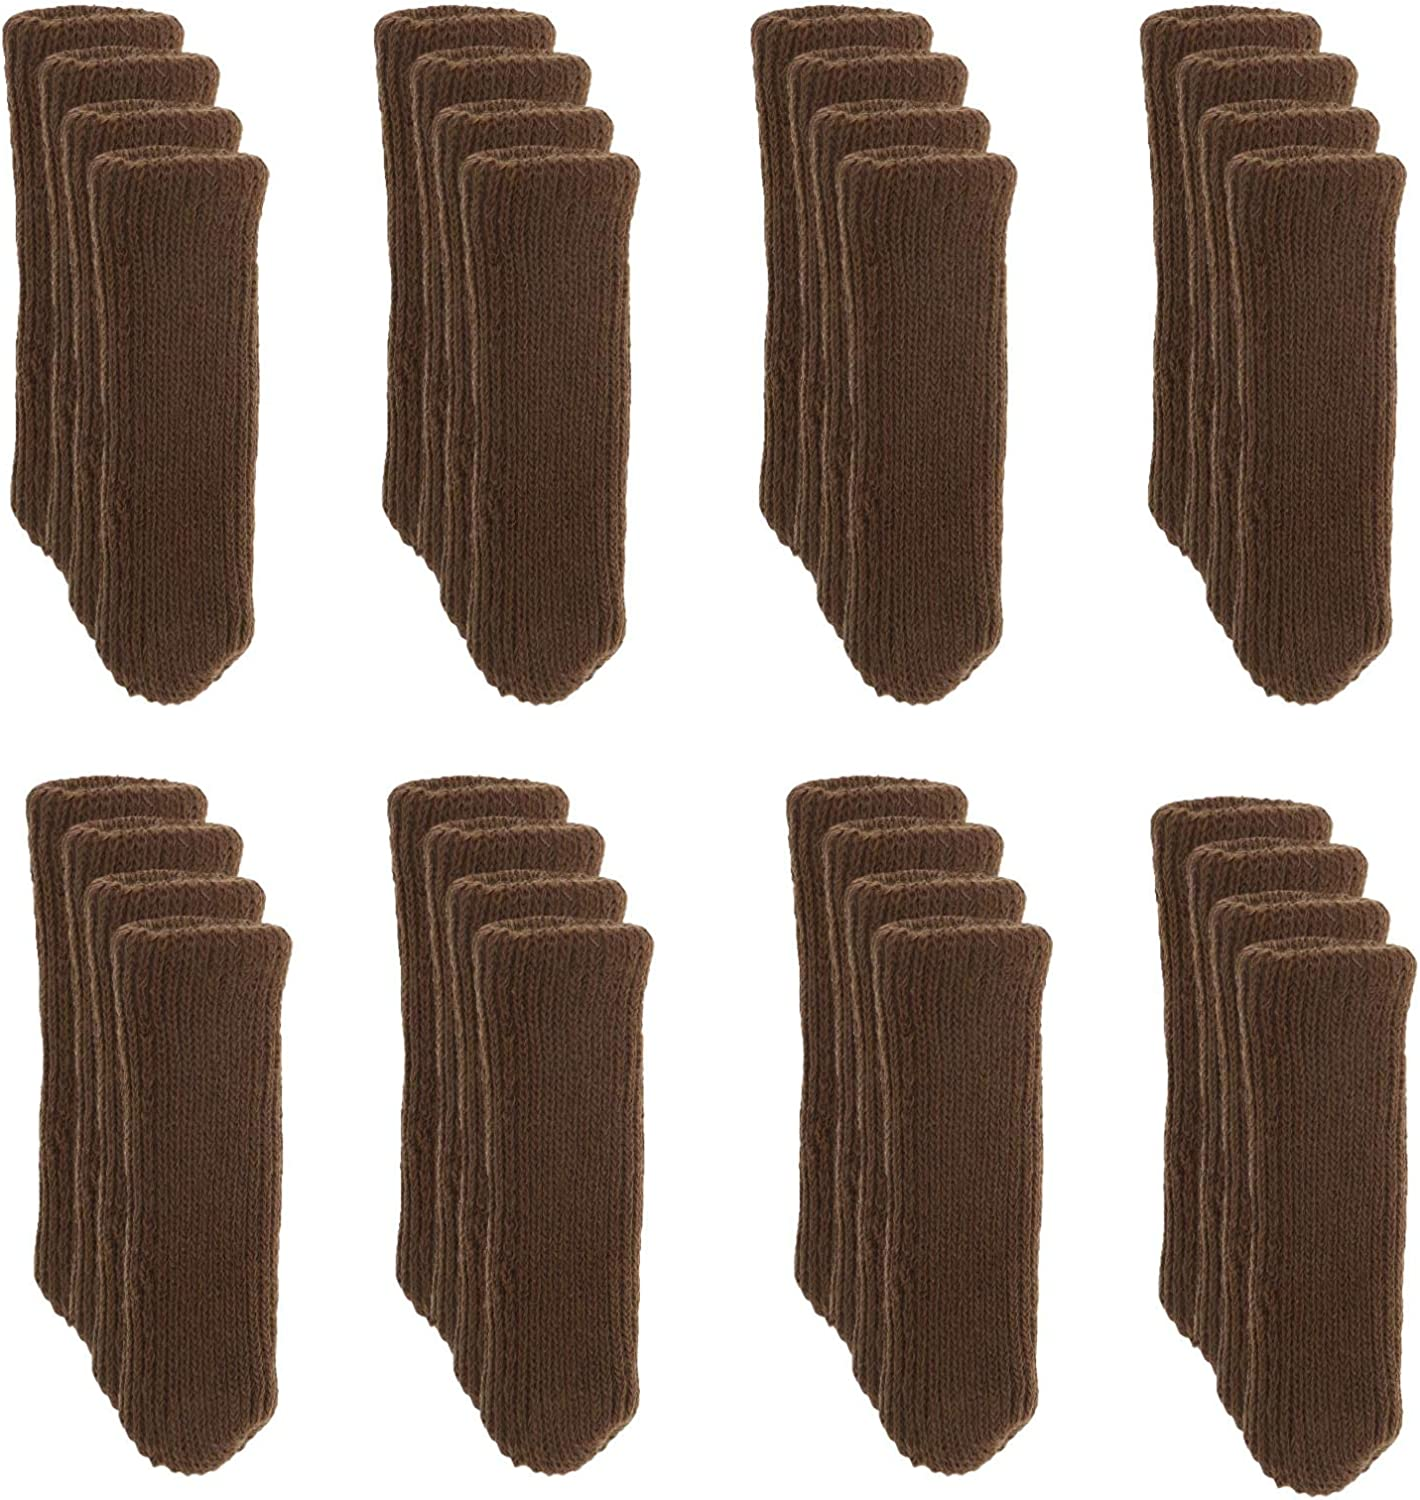 Creative-Idea 32Pcs Furniture Table Chair Leg Socks Covers Caps Set Floor Protectors Reduce Noise Double Thickness Knitted High Elastic Non-Slip Fit 1.8 to 3 Inches Brown